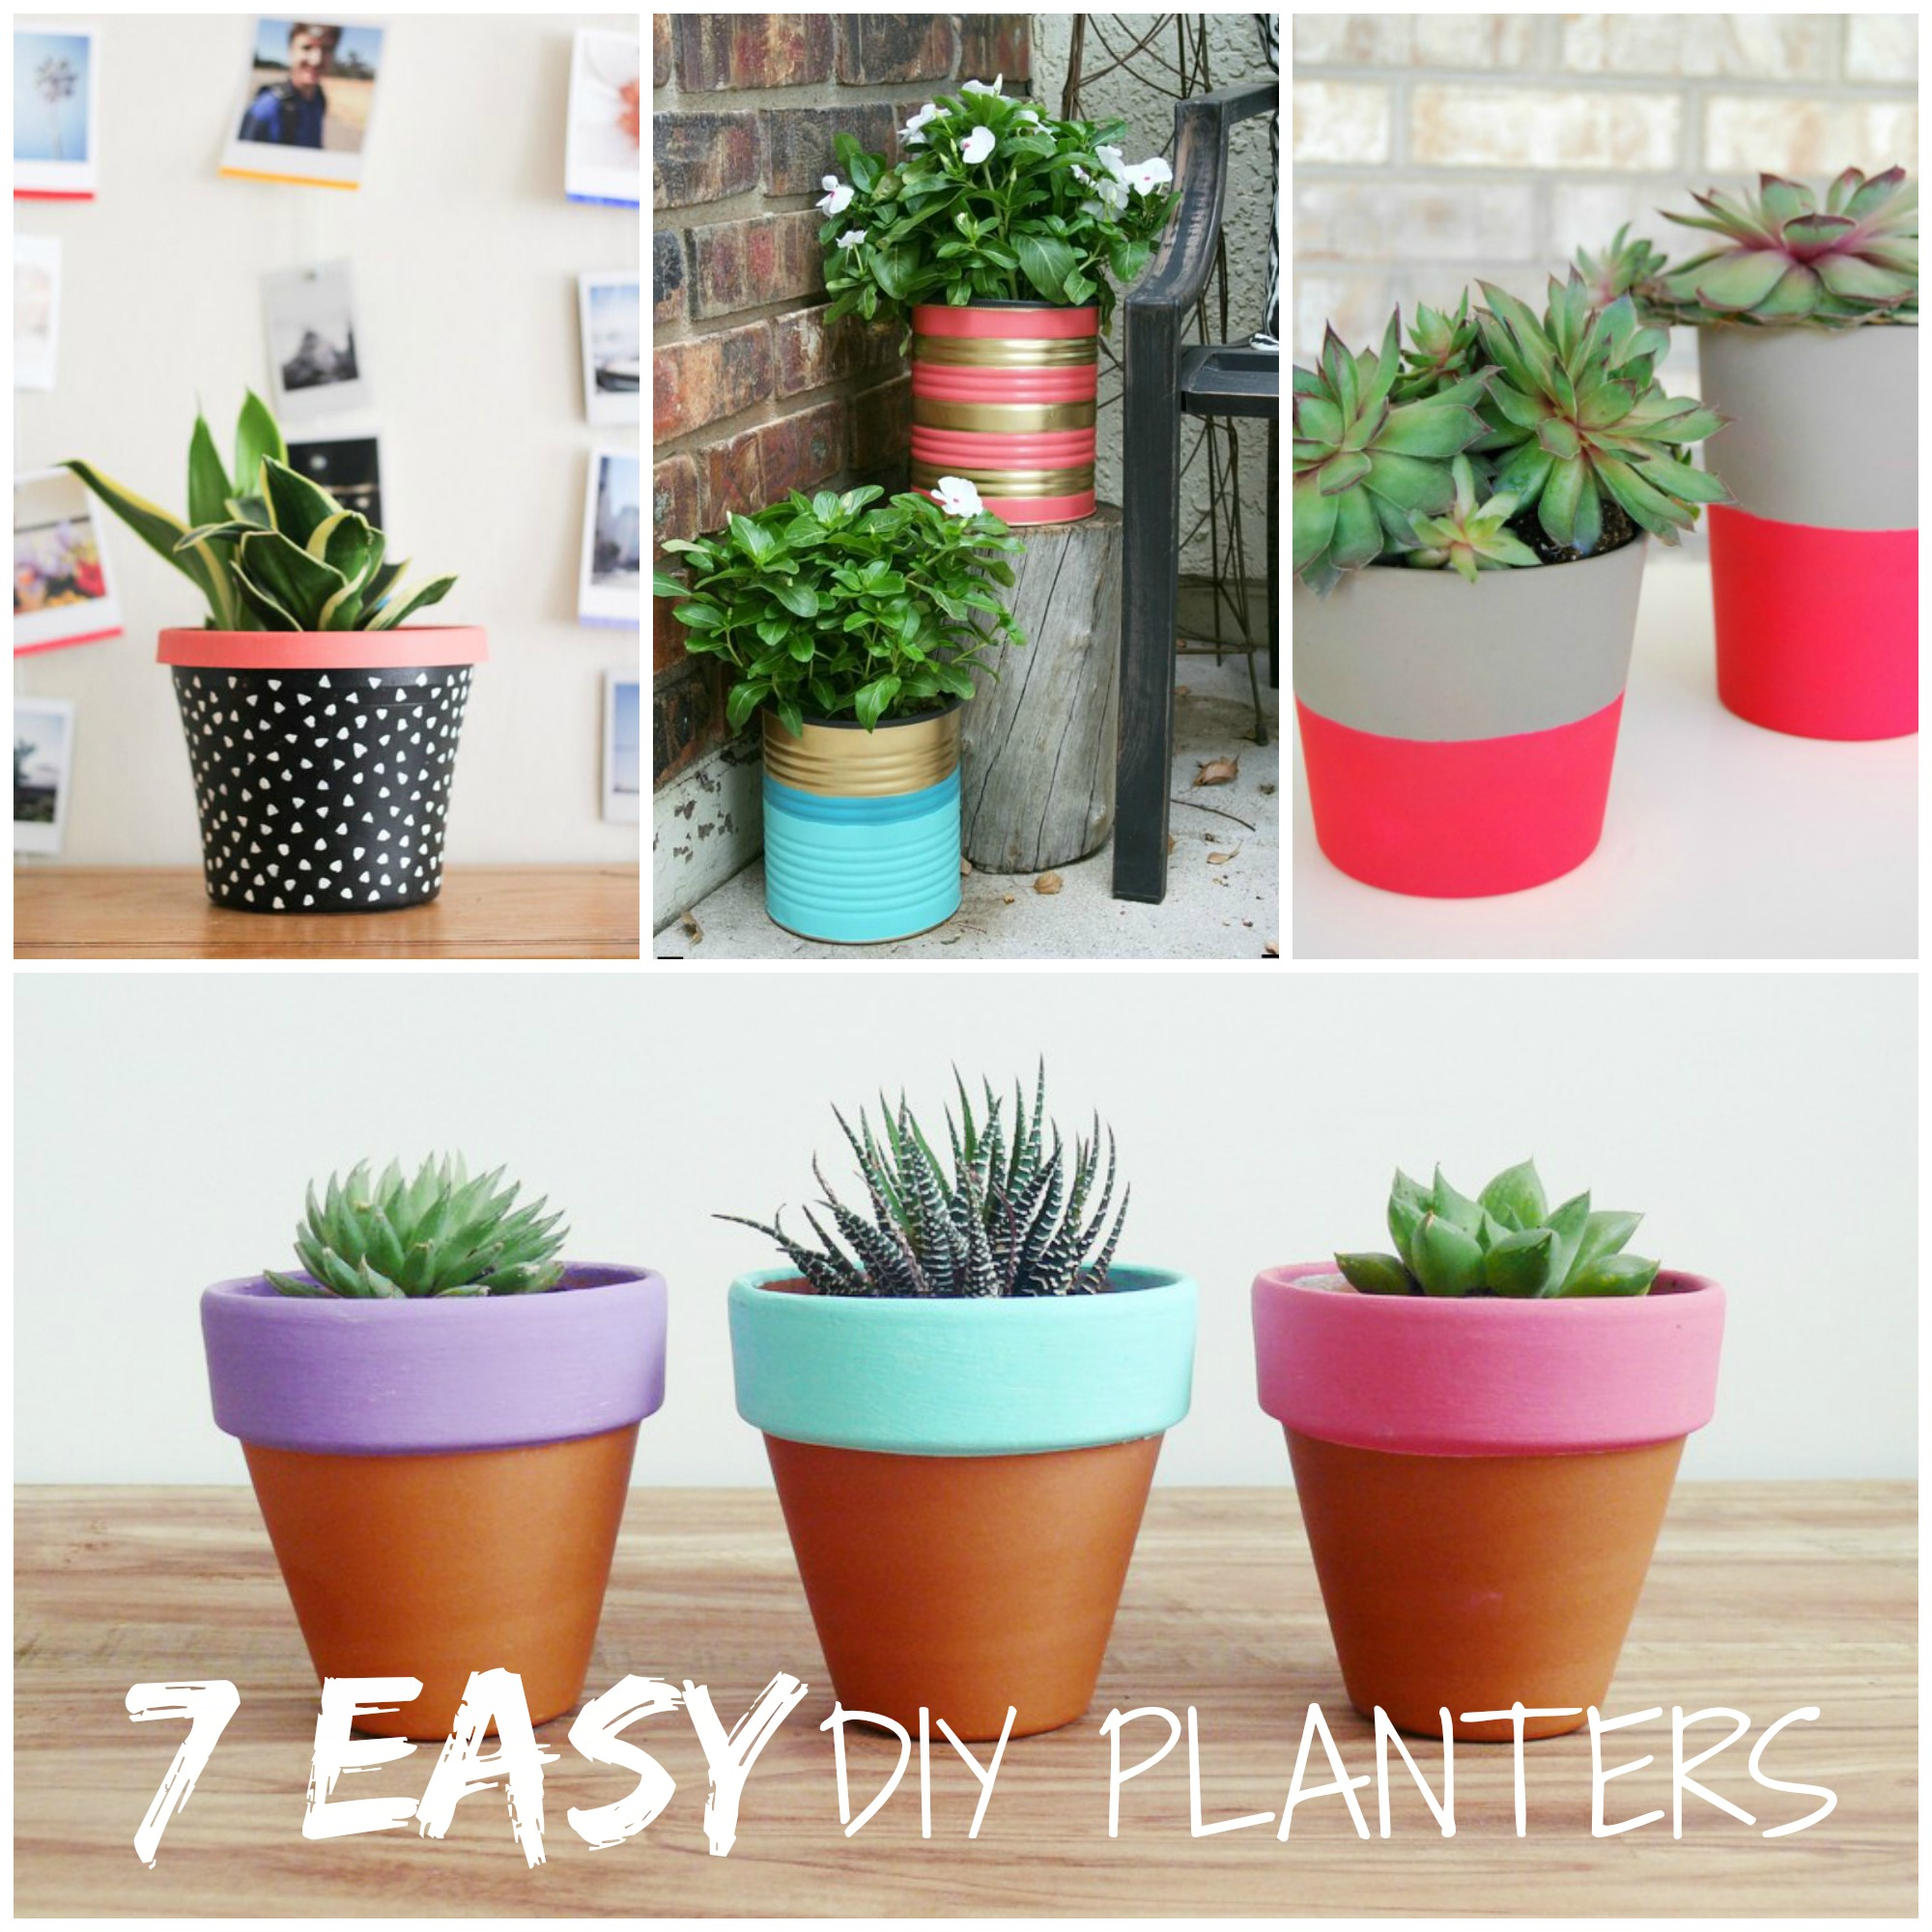 Trending Tuesday: 21 Easy DIY Planters - Creative Juice | title